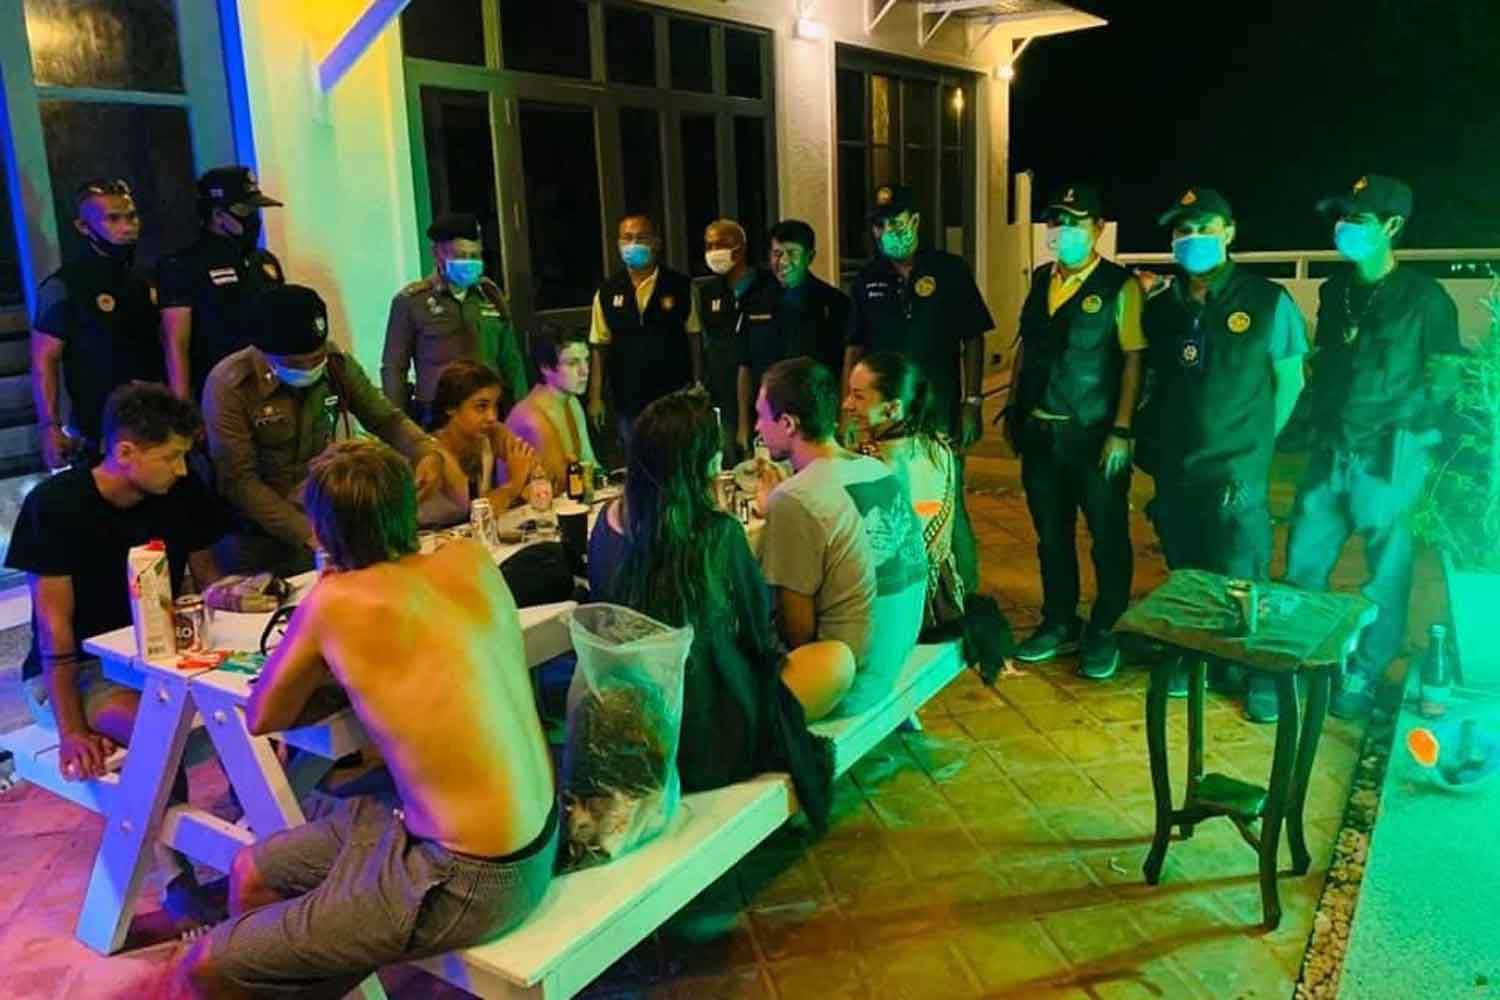 Seven Russian tourists are caught partying in a house on Koh Phangan island, Surat Thani, in violation of the emergency decree curfew. (Photo: Supapong Chaolan)